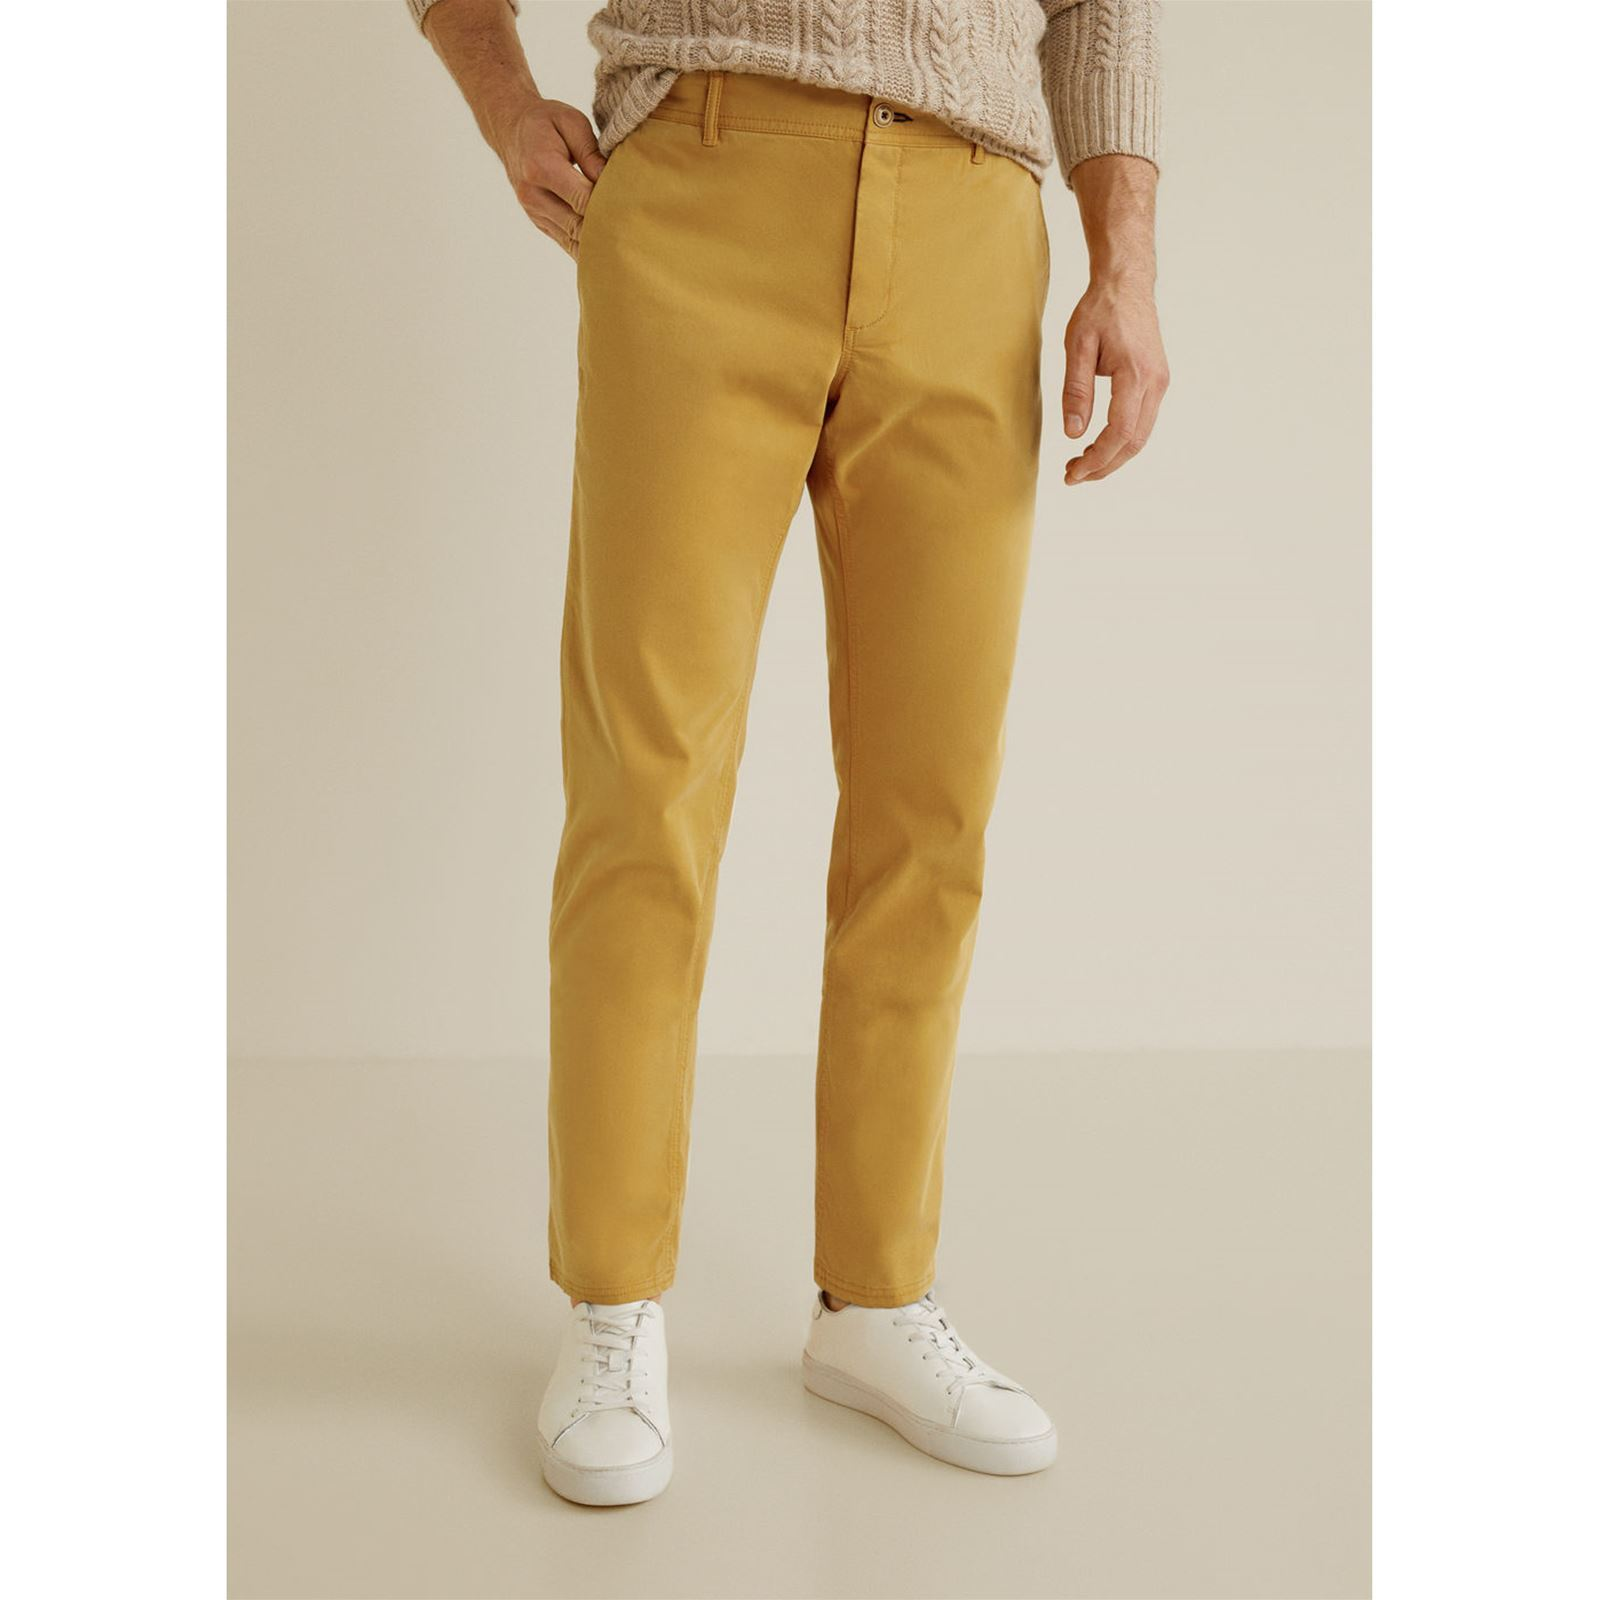 Slim Style fit Man Chino Pantalon Mango Moutarde qC0pwn